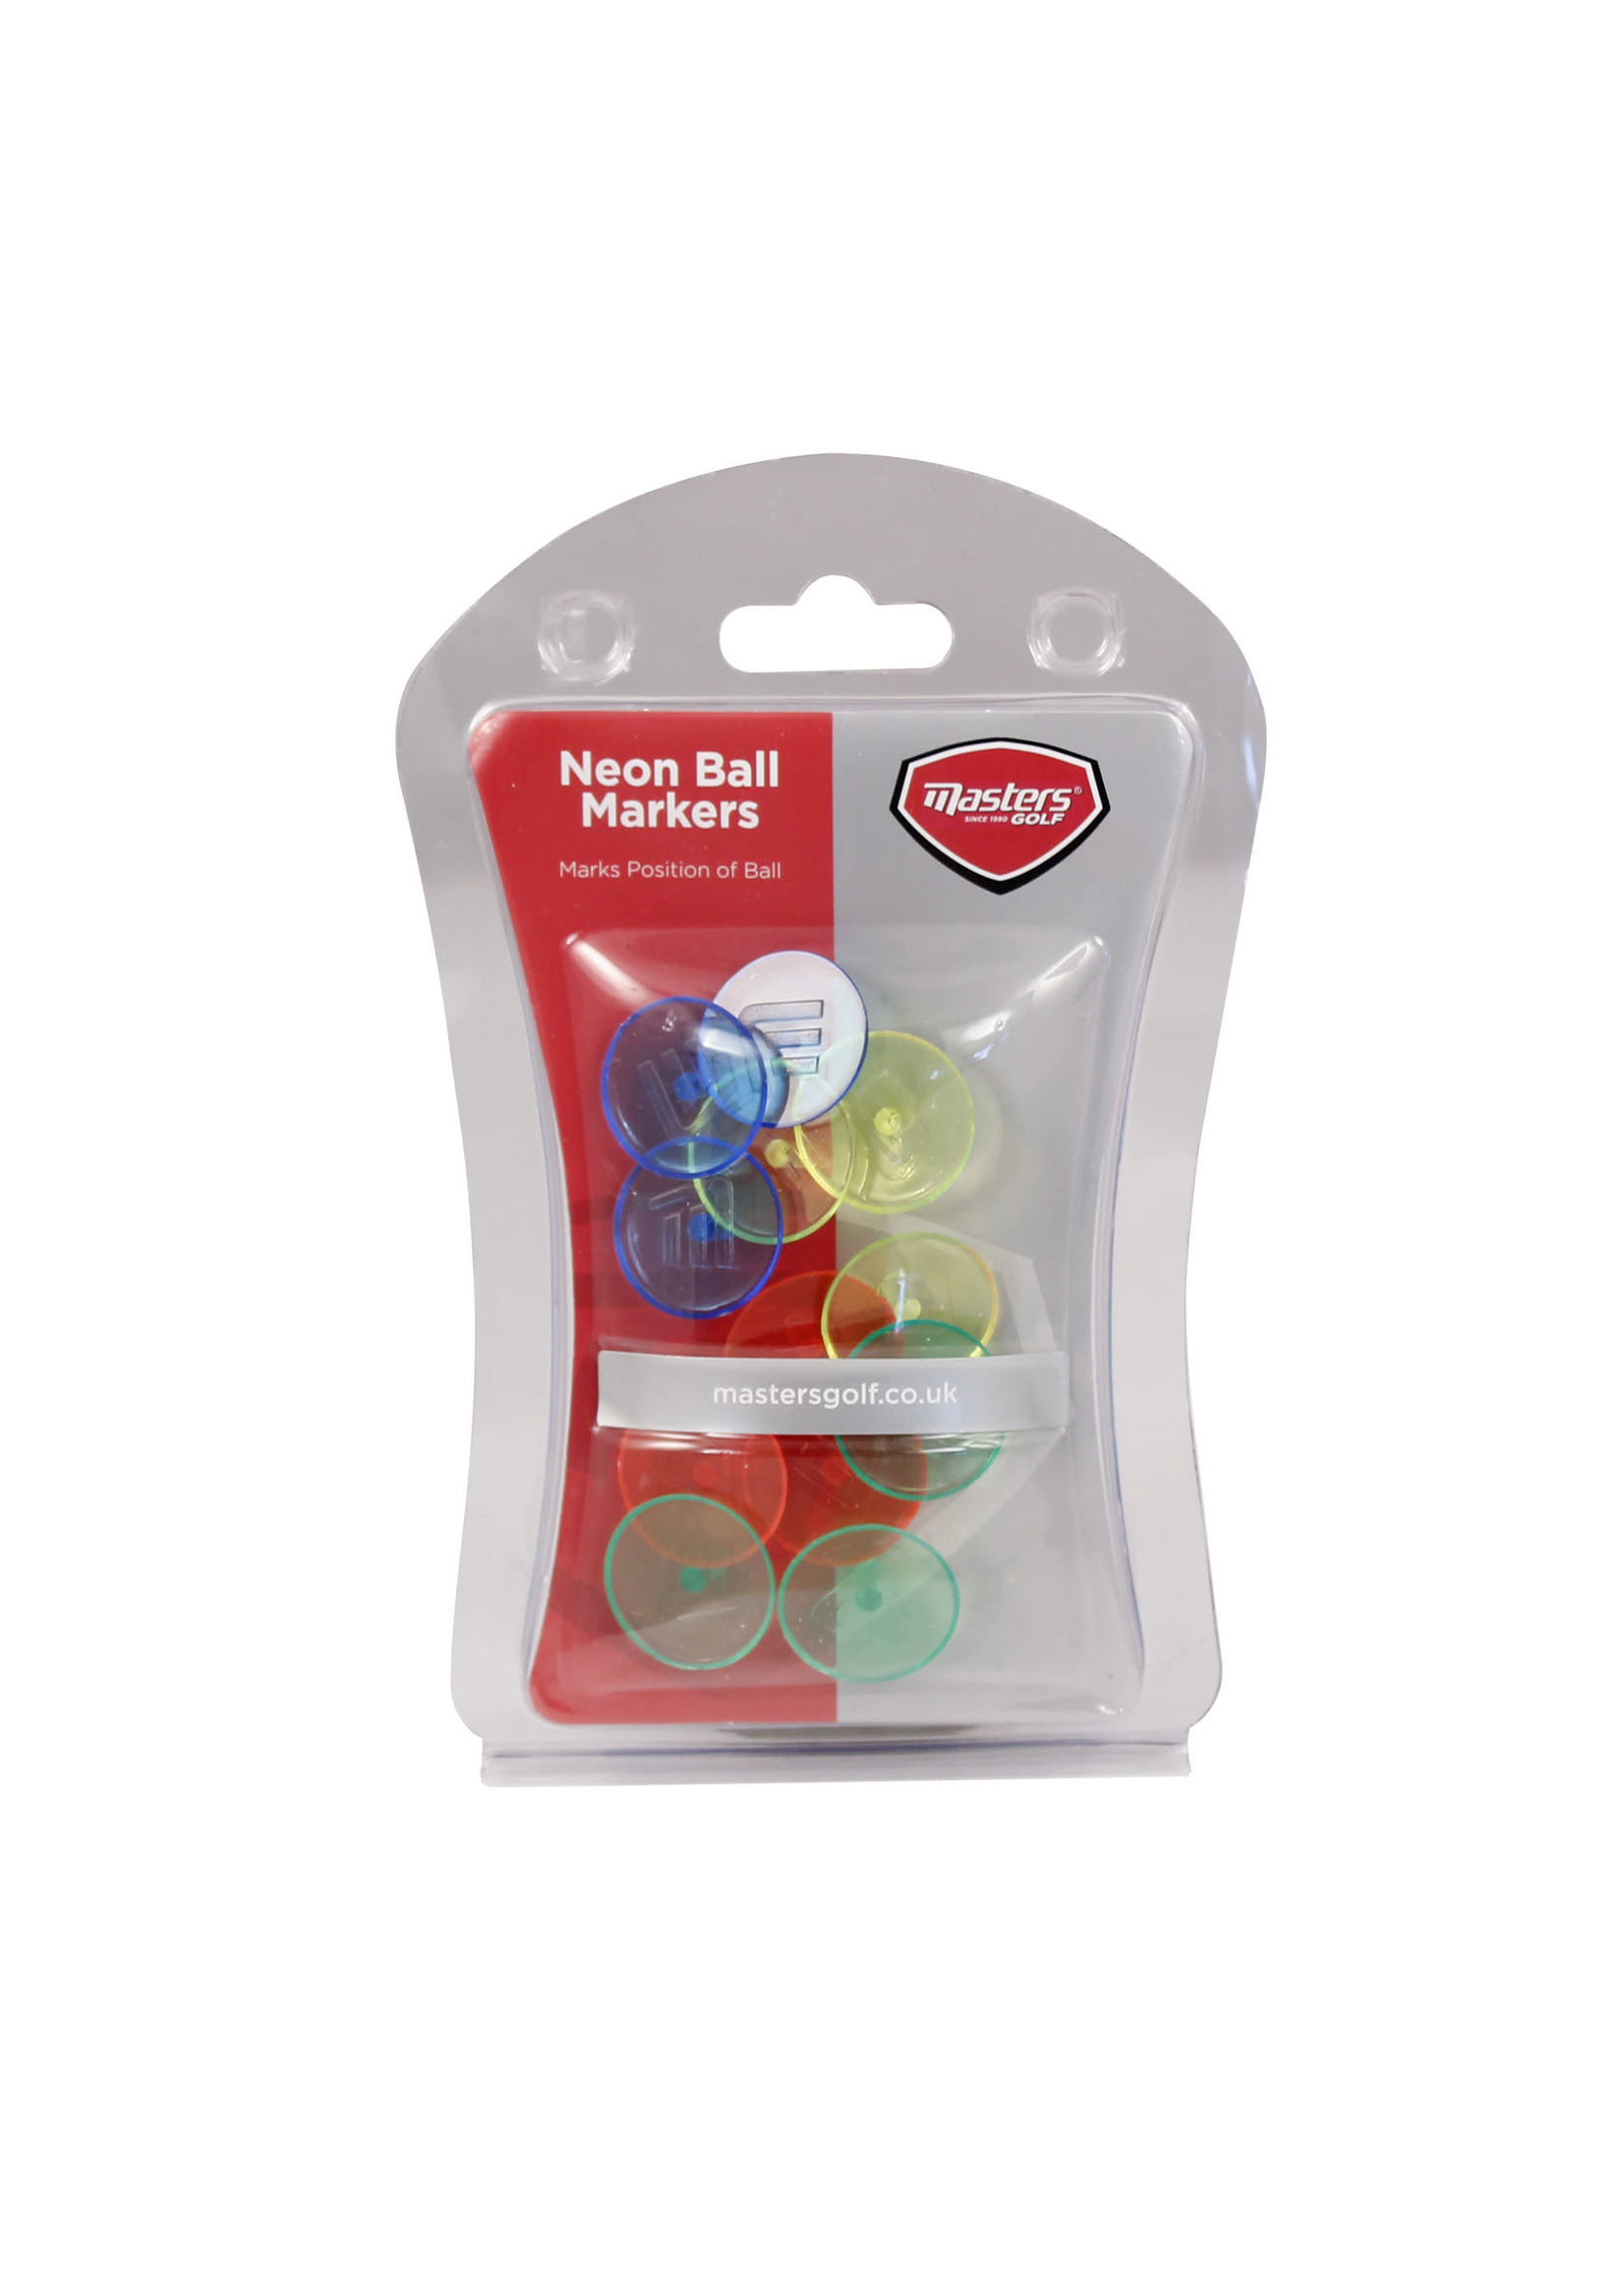 Masters Masters Neon Ballmarkers (12 Pack)